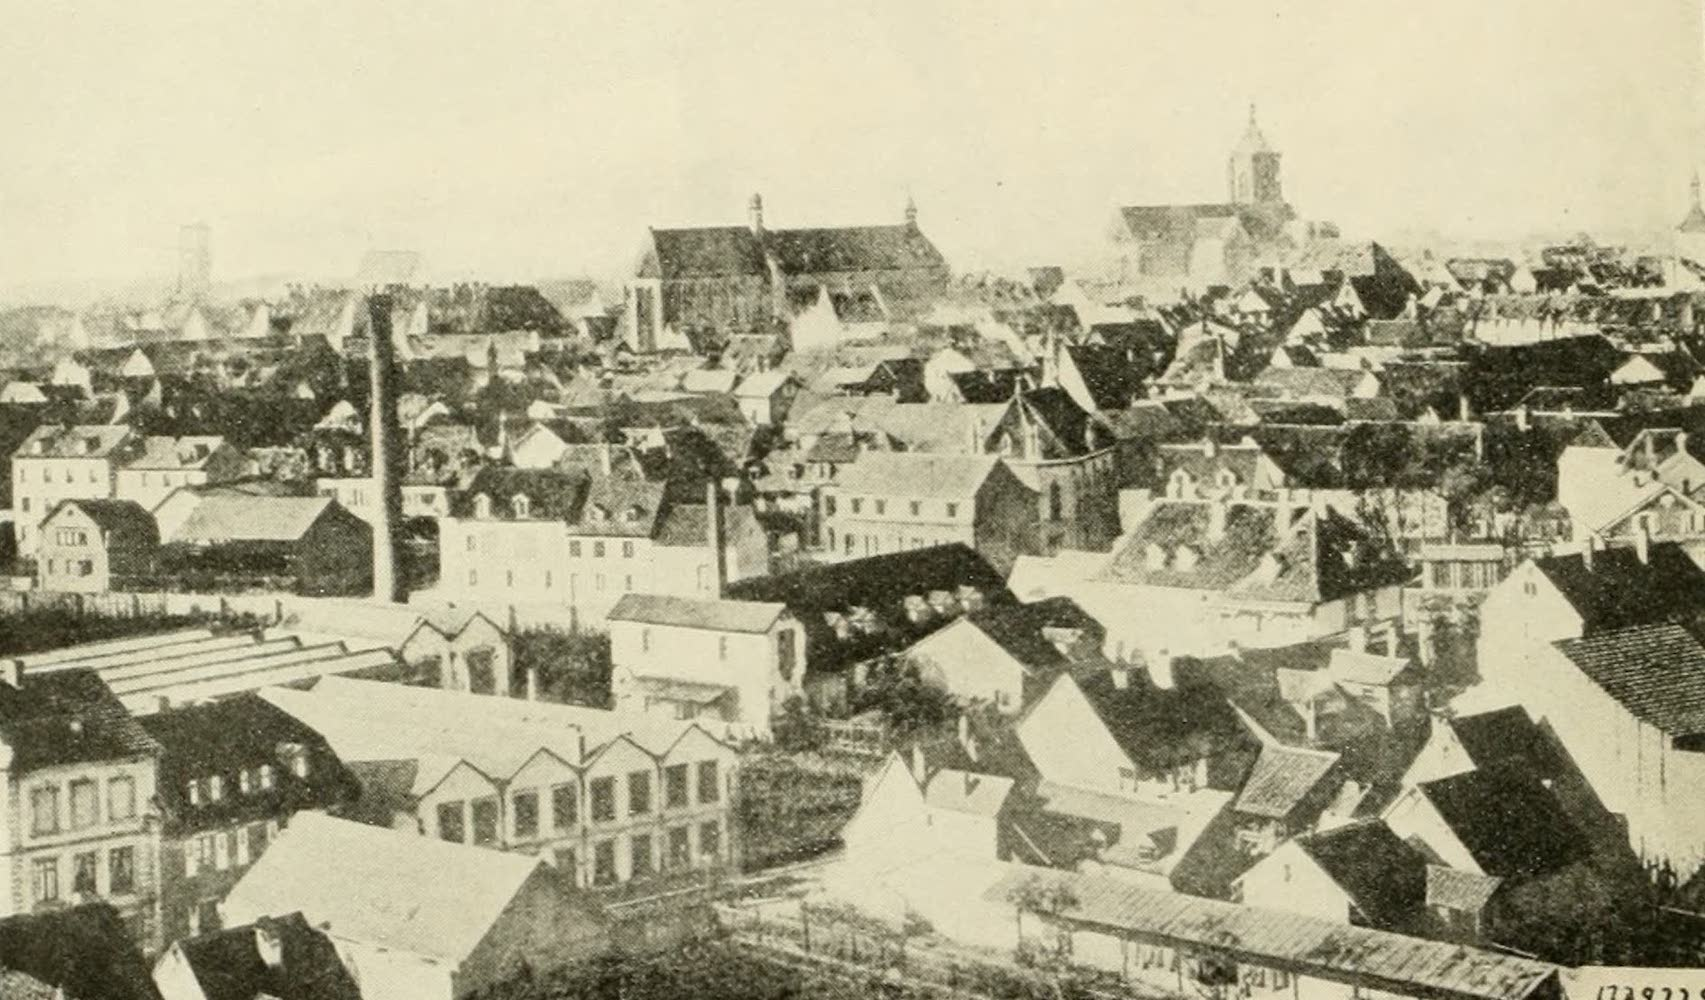 Laird & Lee's World's War Glimpses - A General View of Colmar (1914)